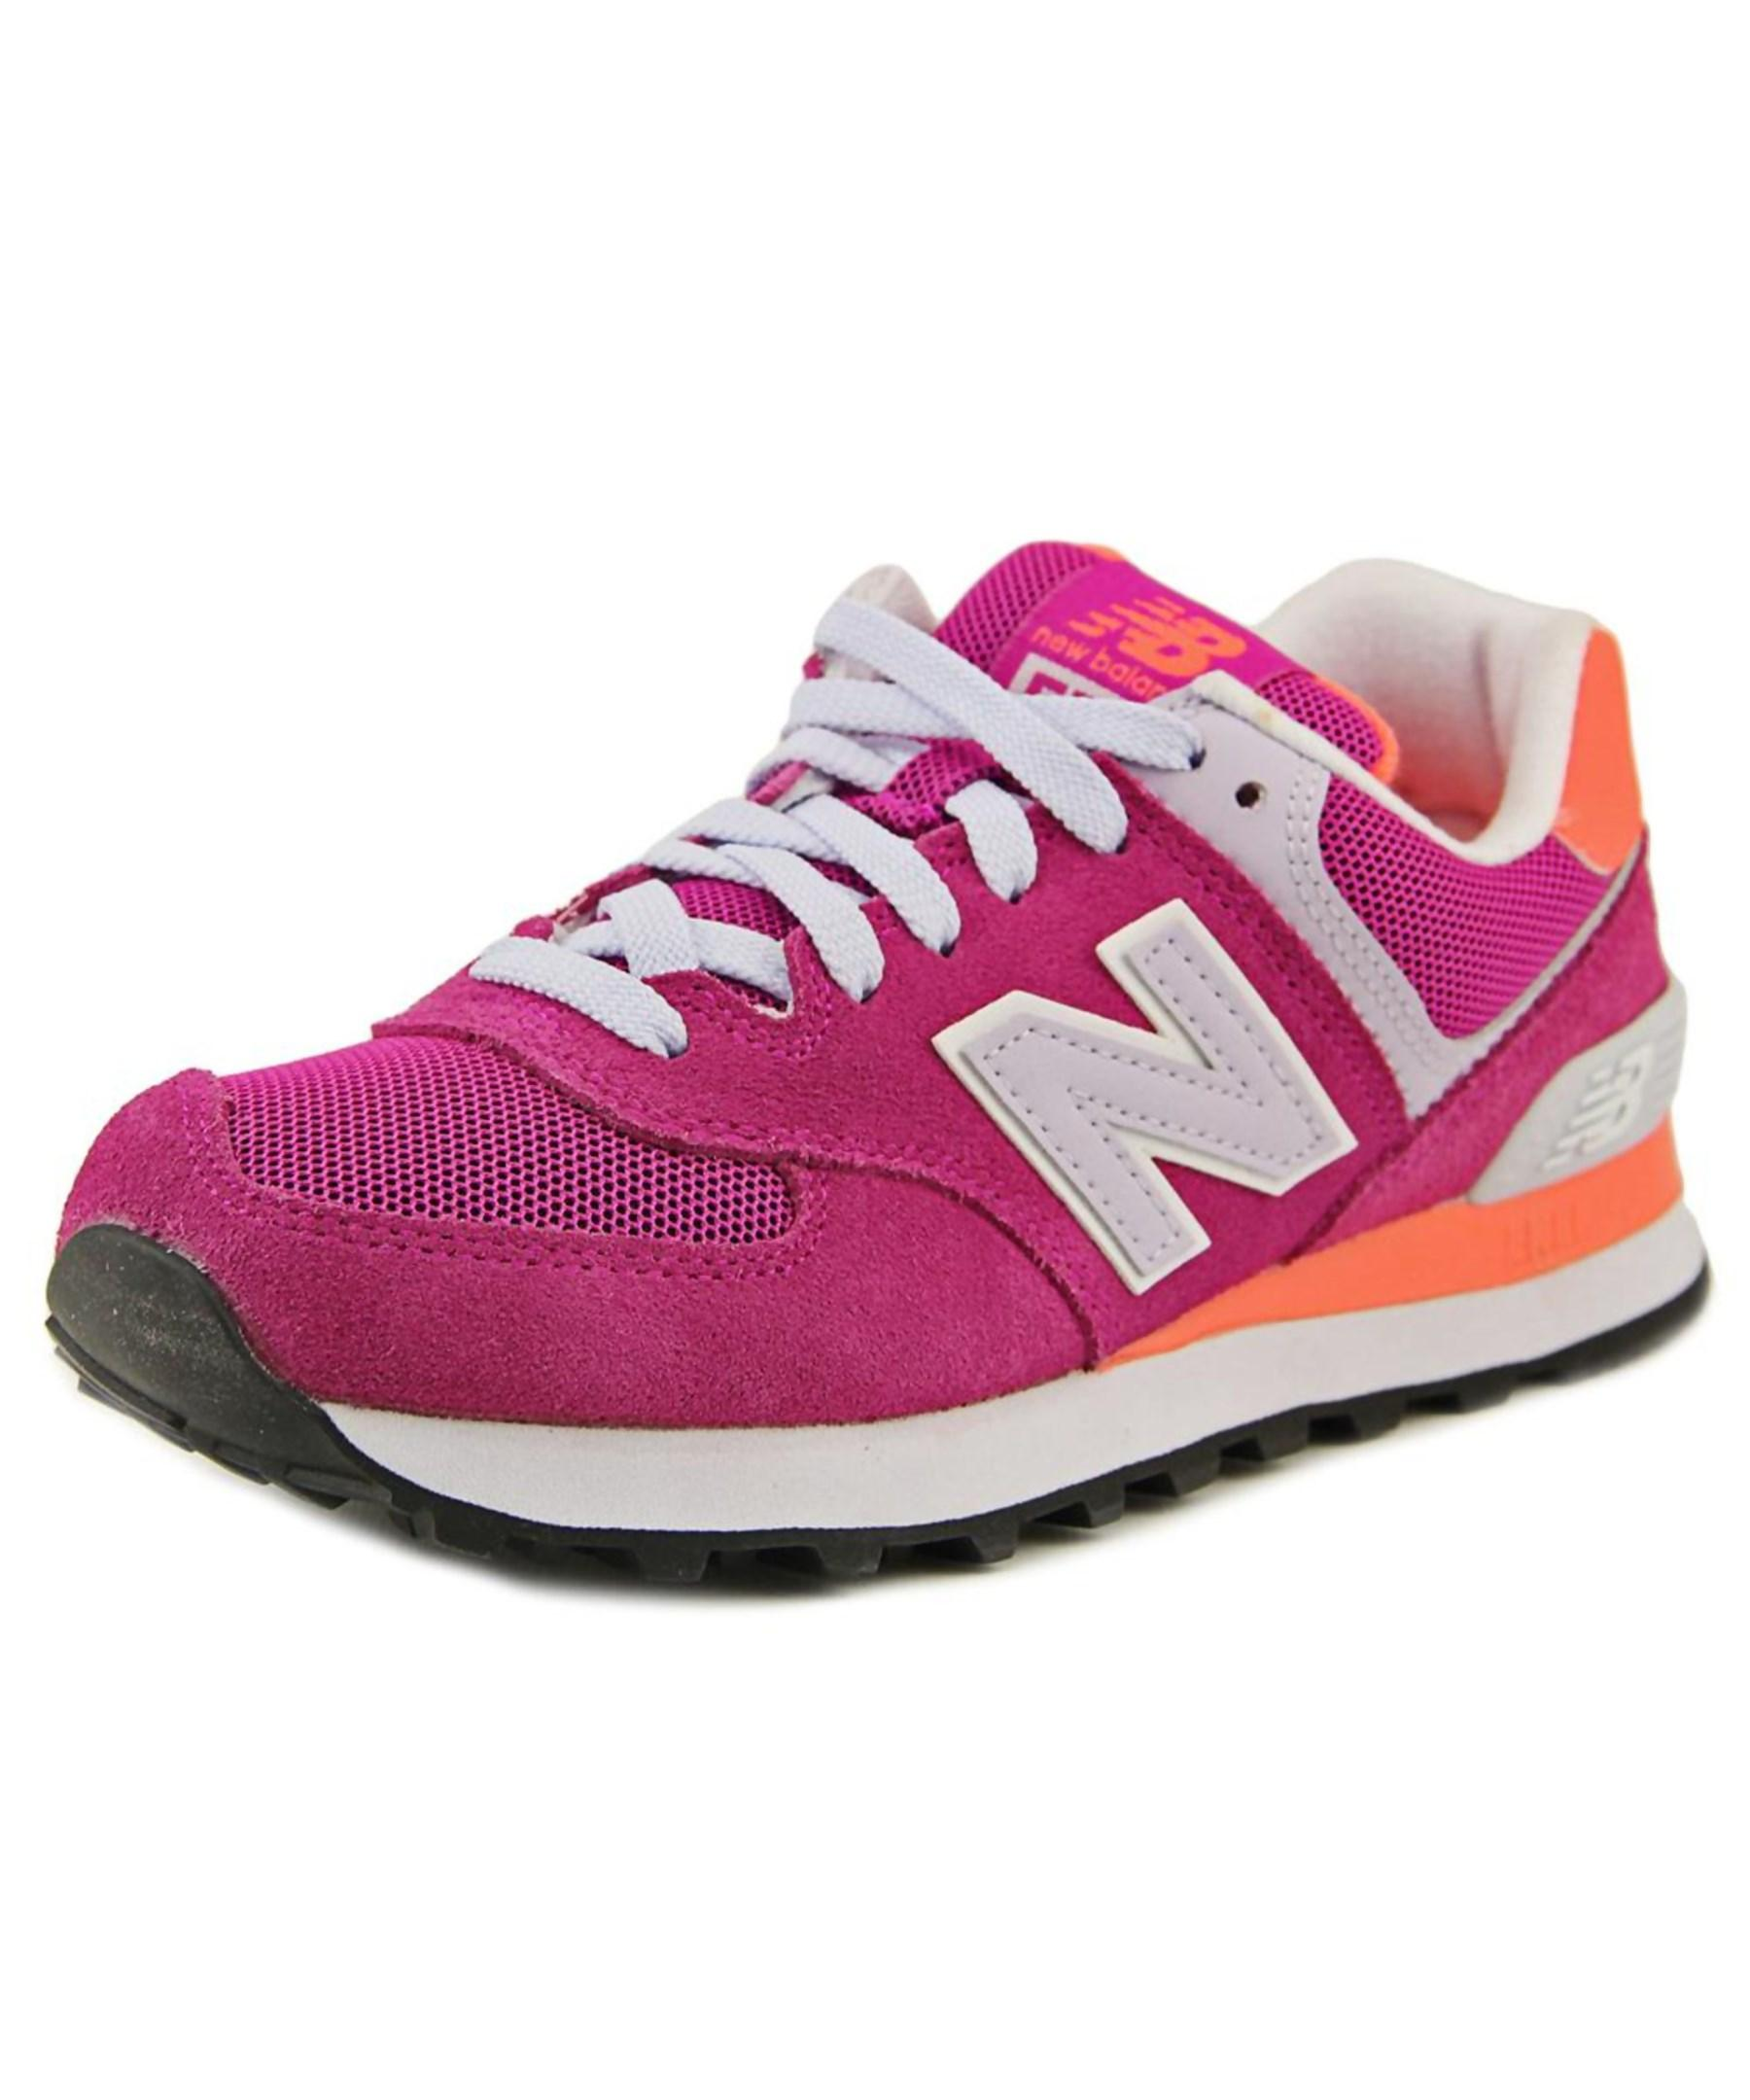 New Balance Wl574 Round Toe Suede Fashion Sneakers In Pink | Lyst